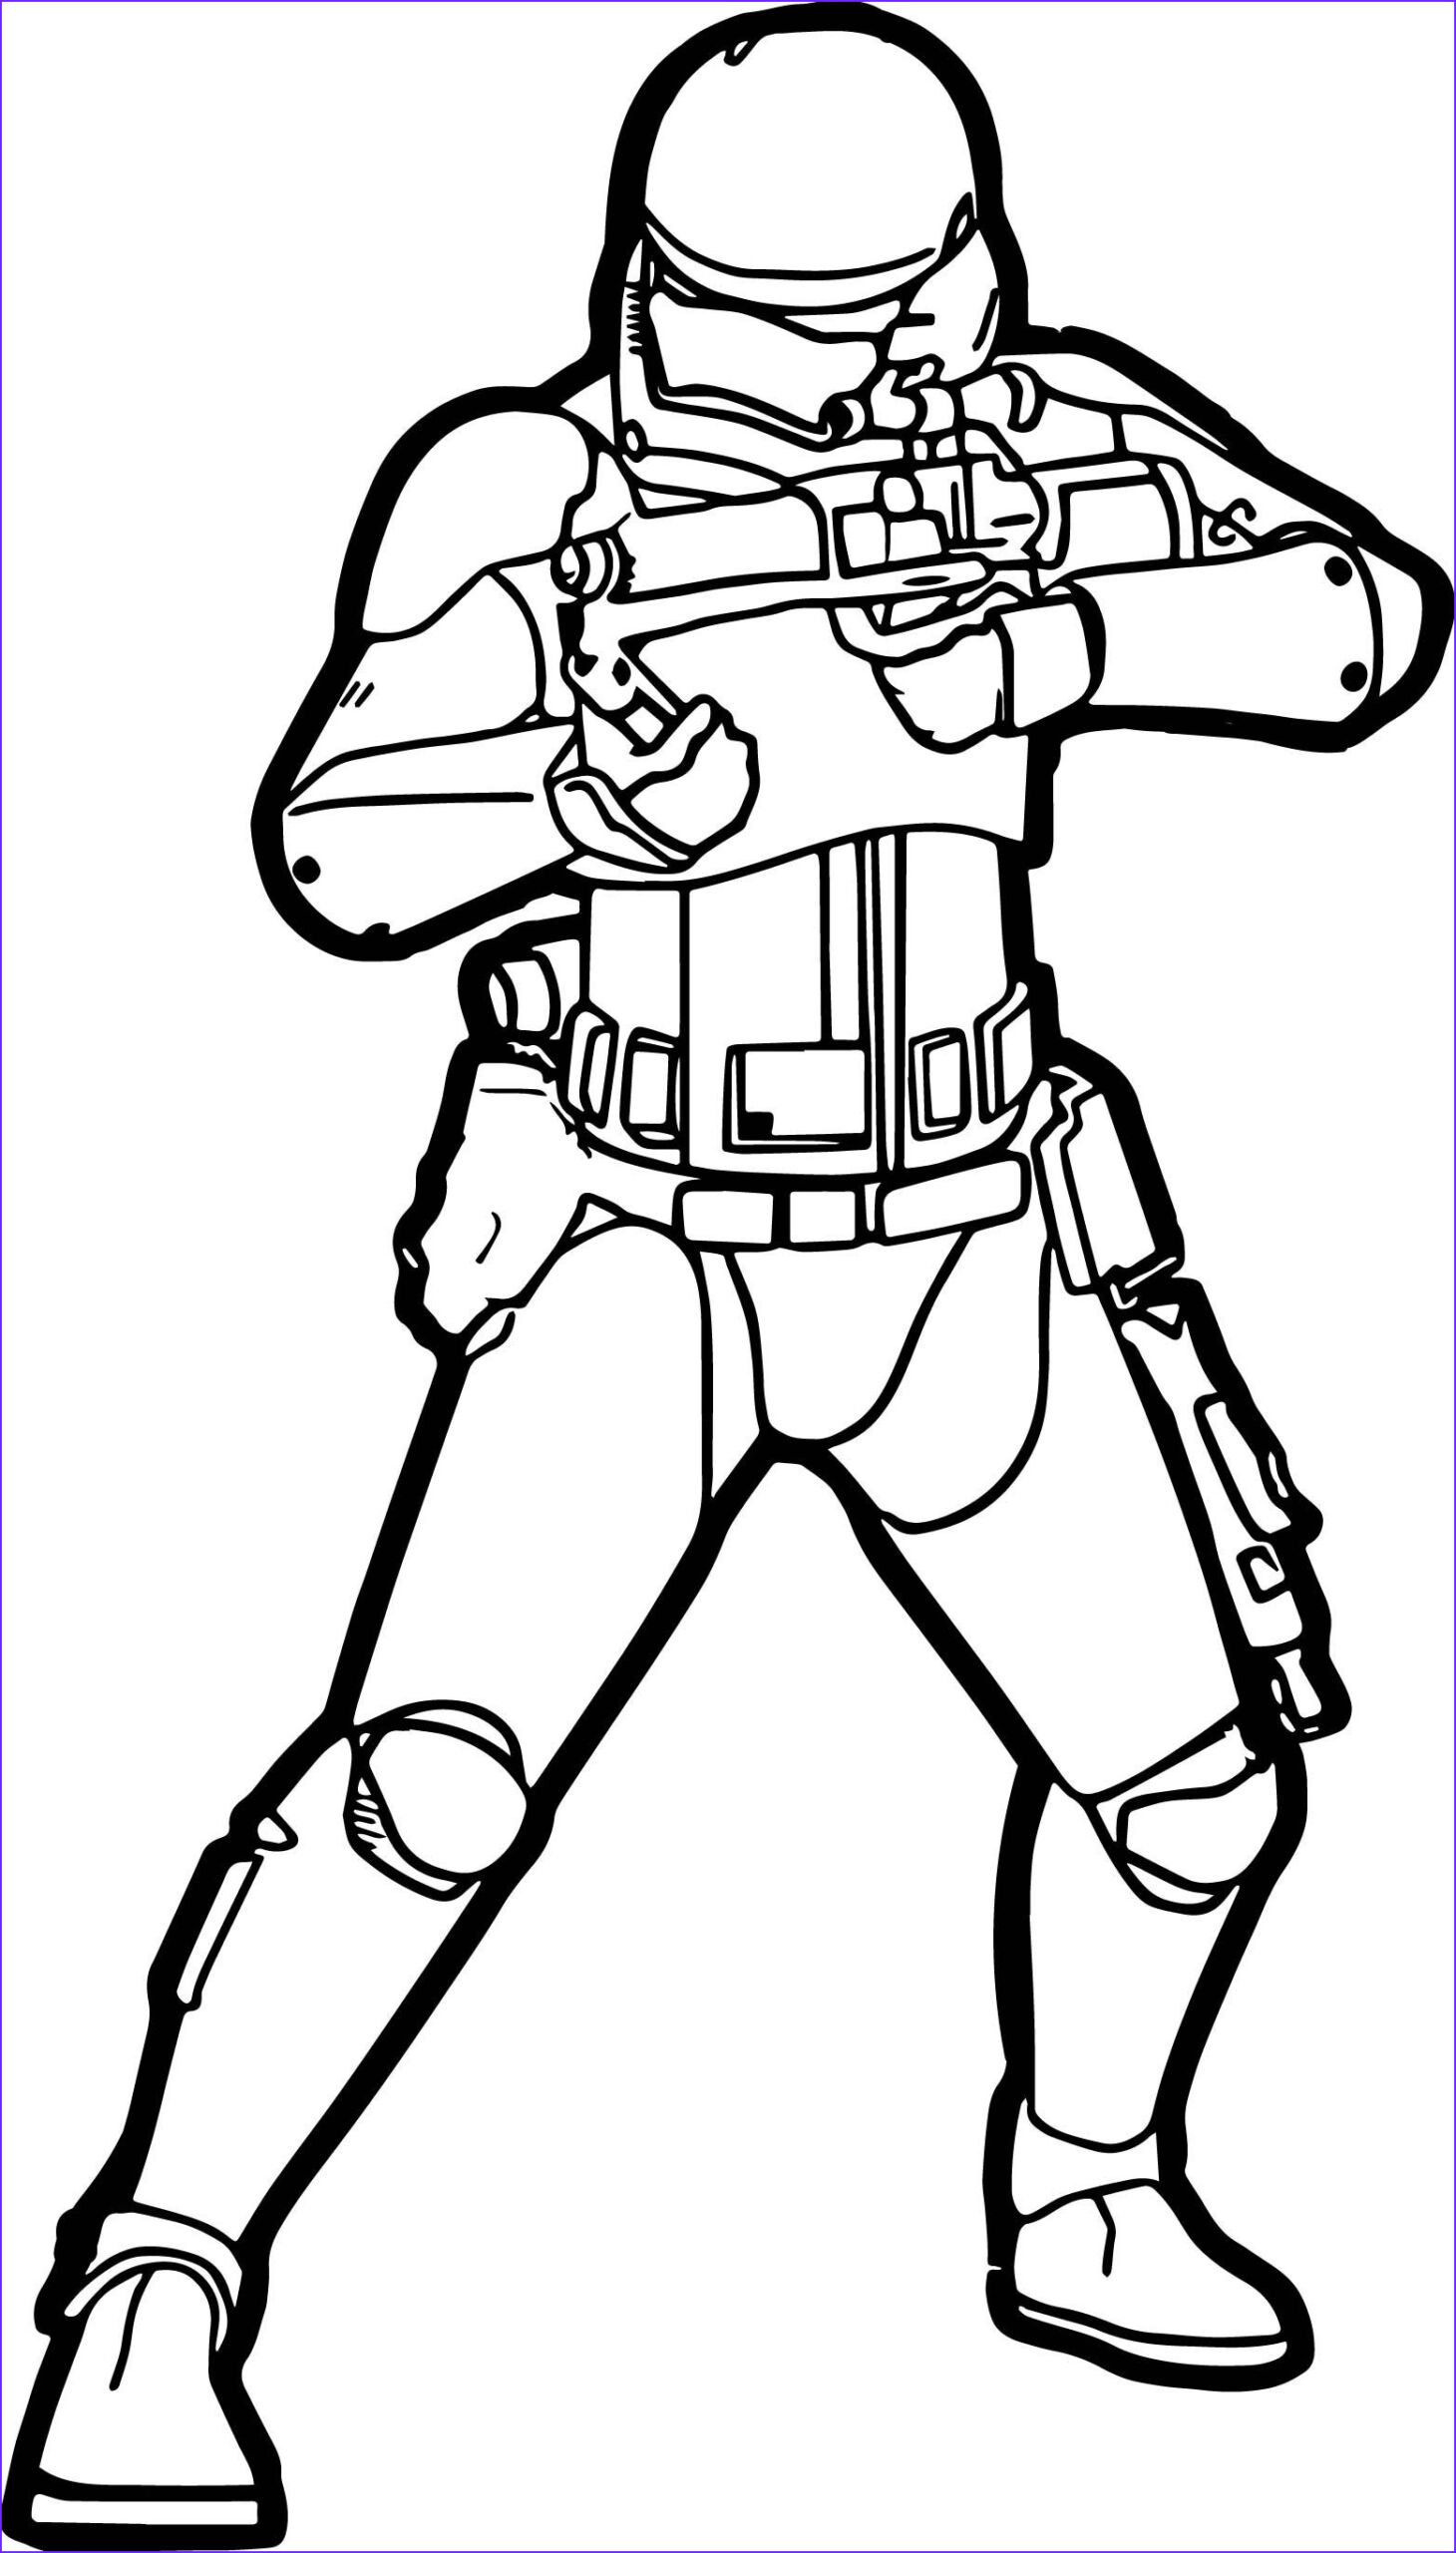 Stormtrooper Coloring Page Cool Photos Cool Star Wars The Force Awakens Stormtrooper Coloring